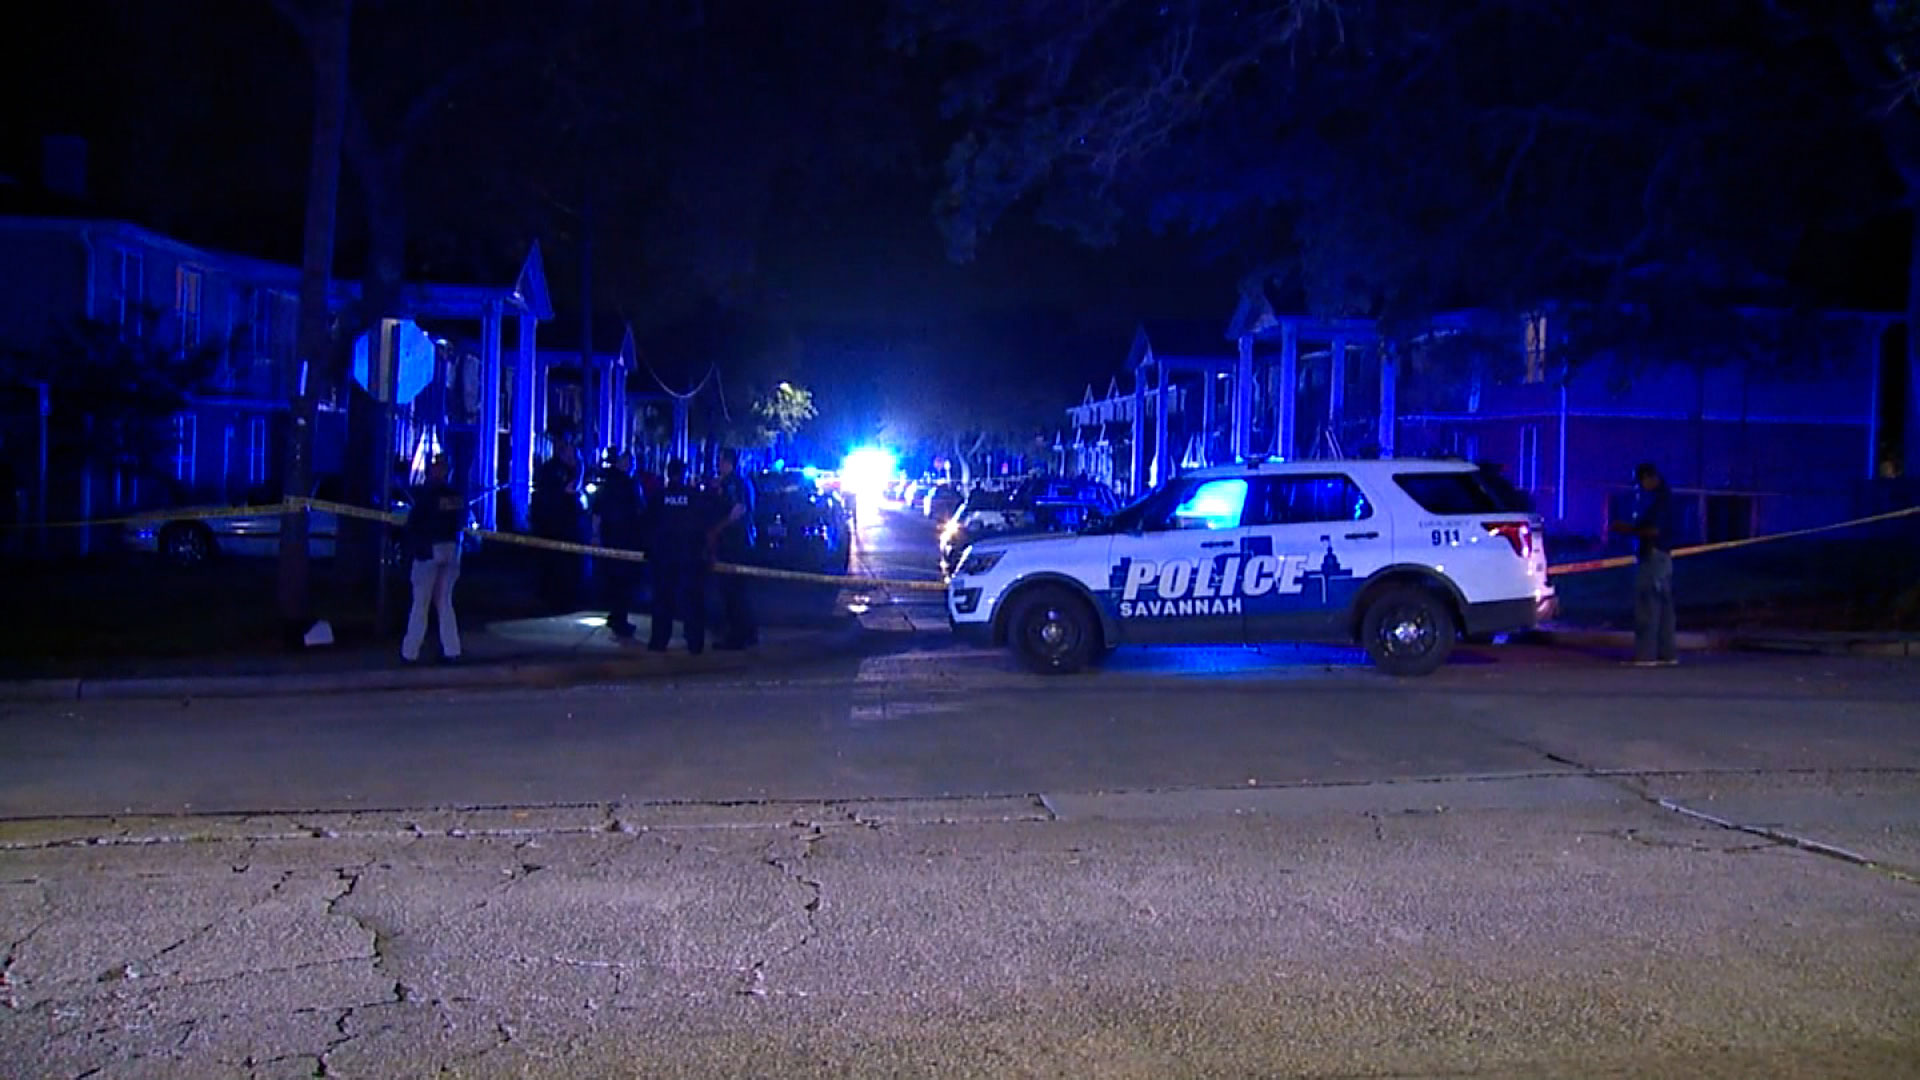 1 killed, 7 others wounded in a shooting in Savannah, police say